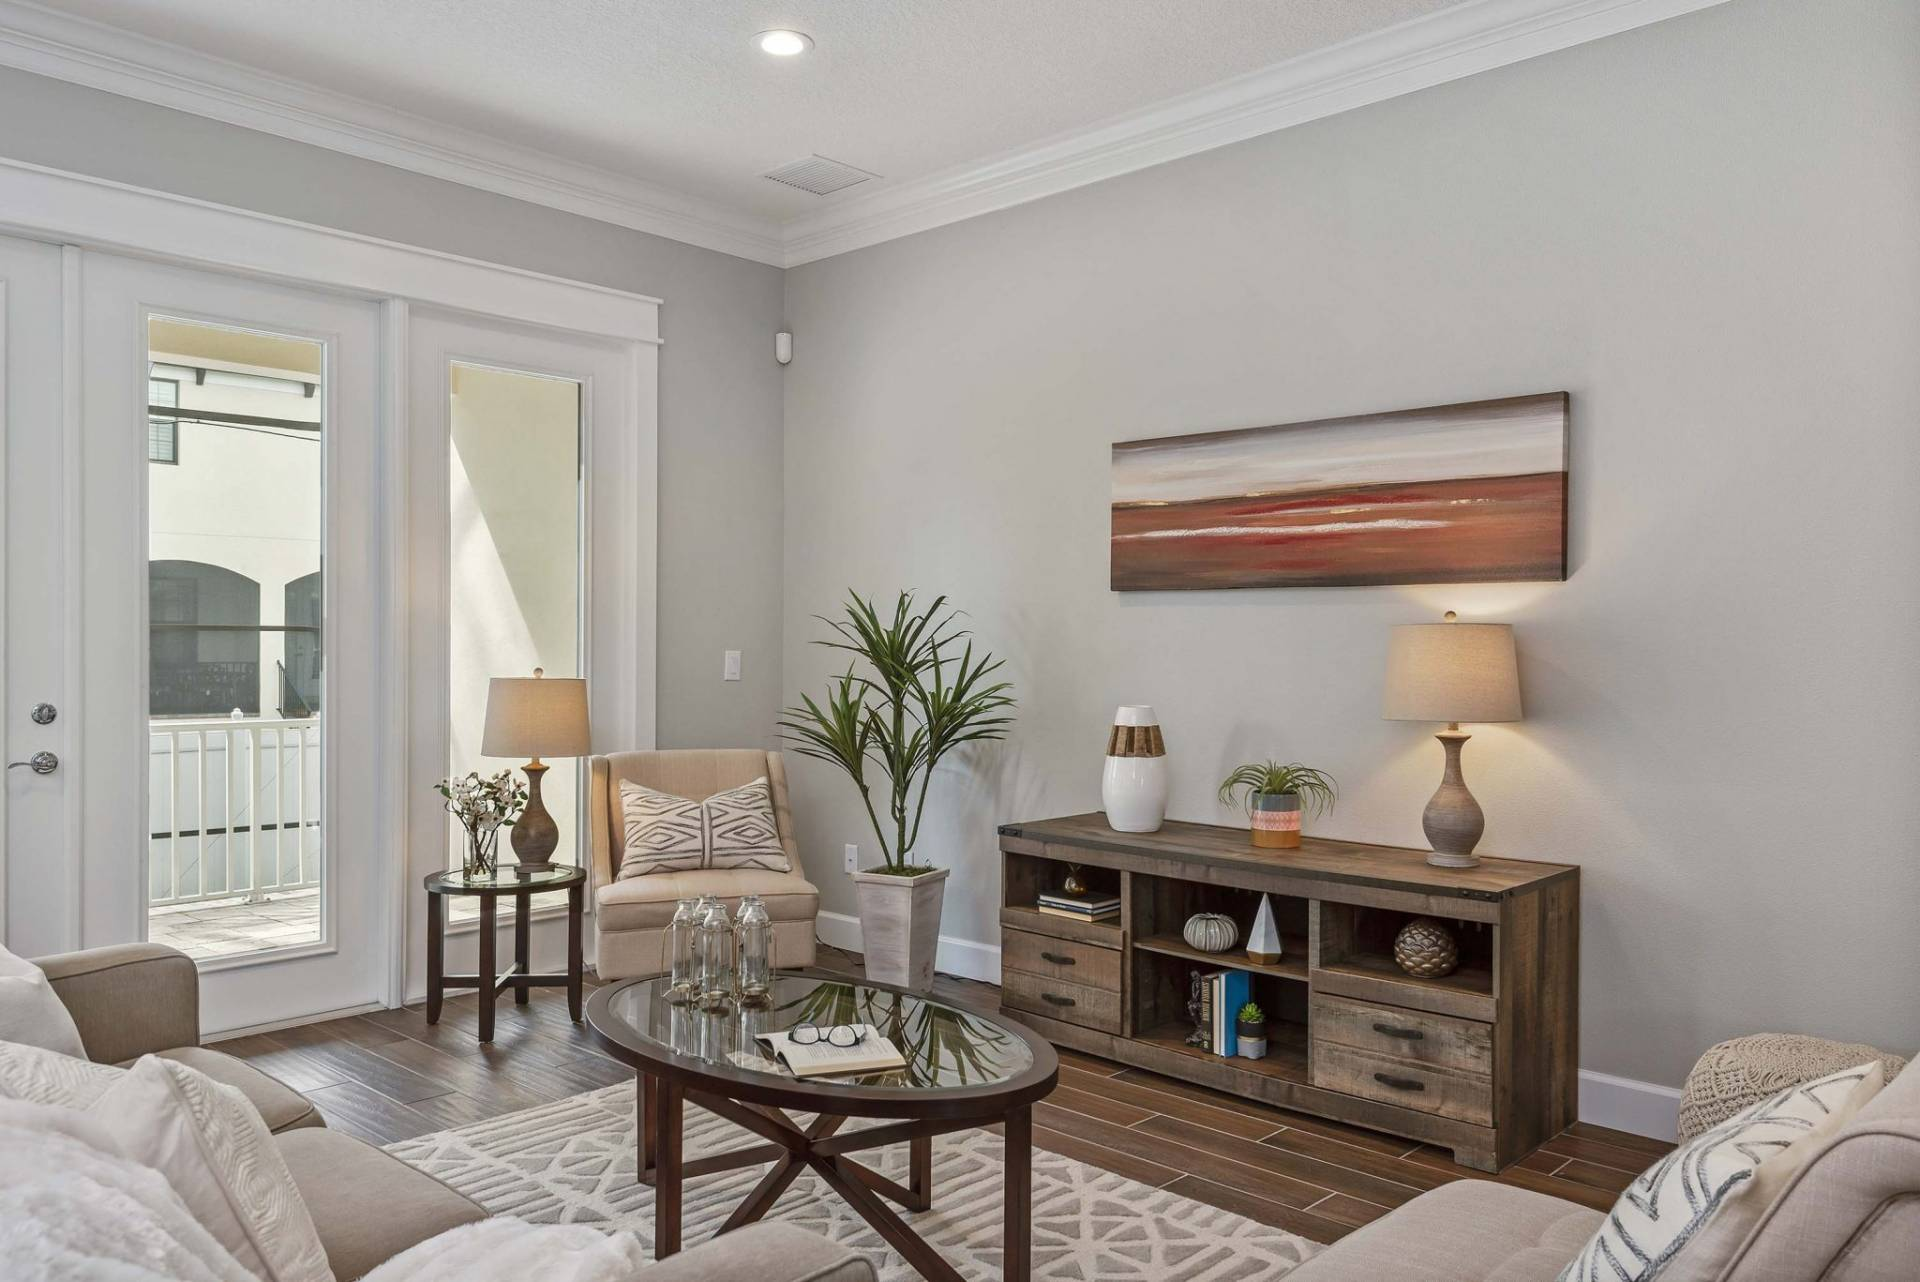 living room designed and built by New Legacy Homes, the best South Tampa homebuilder